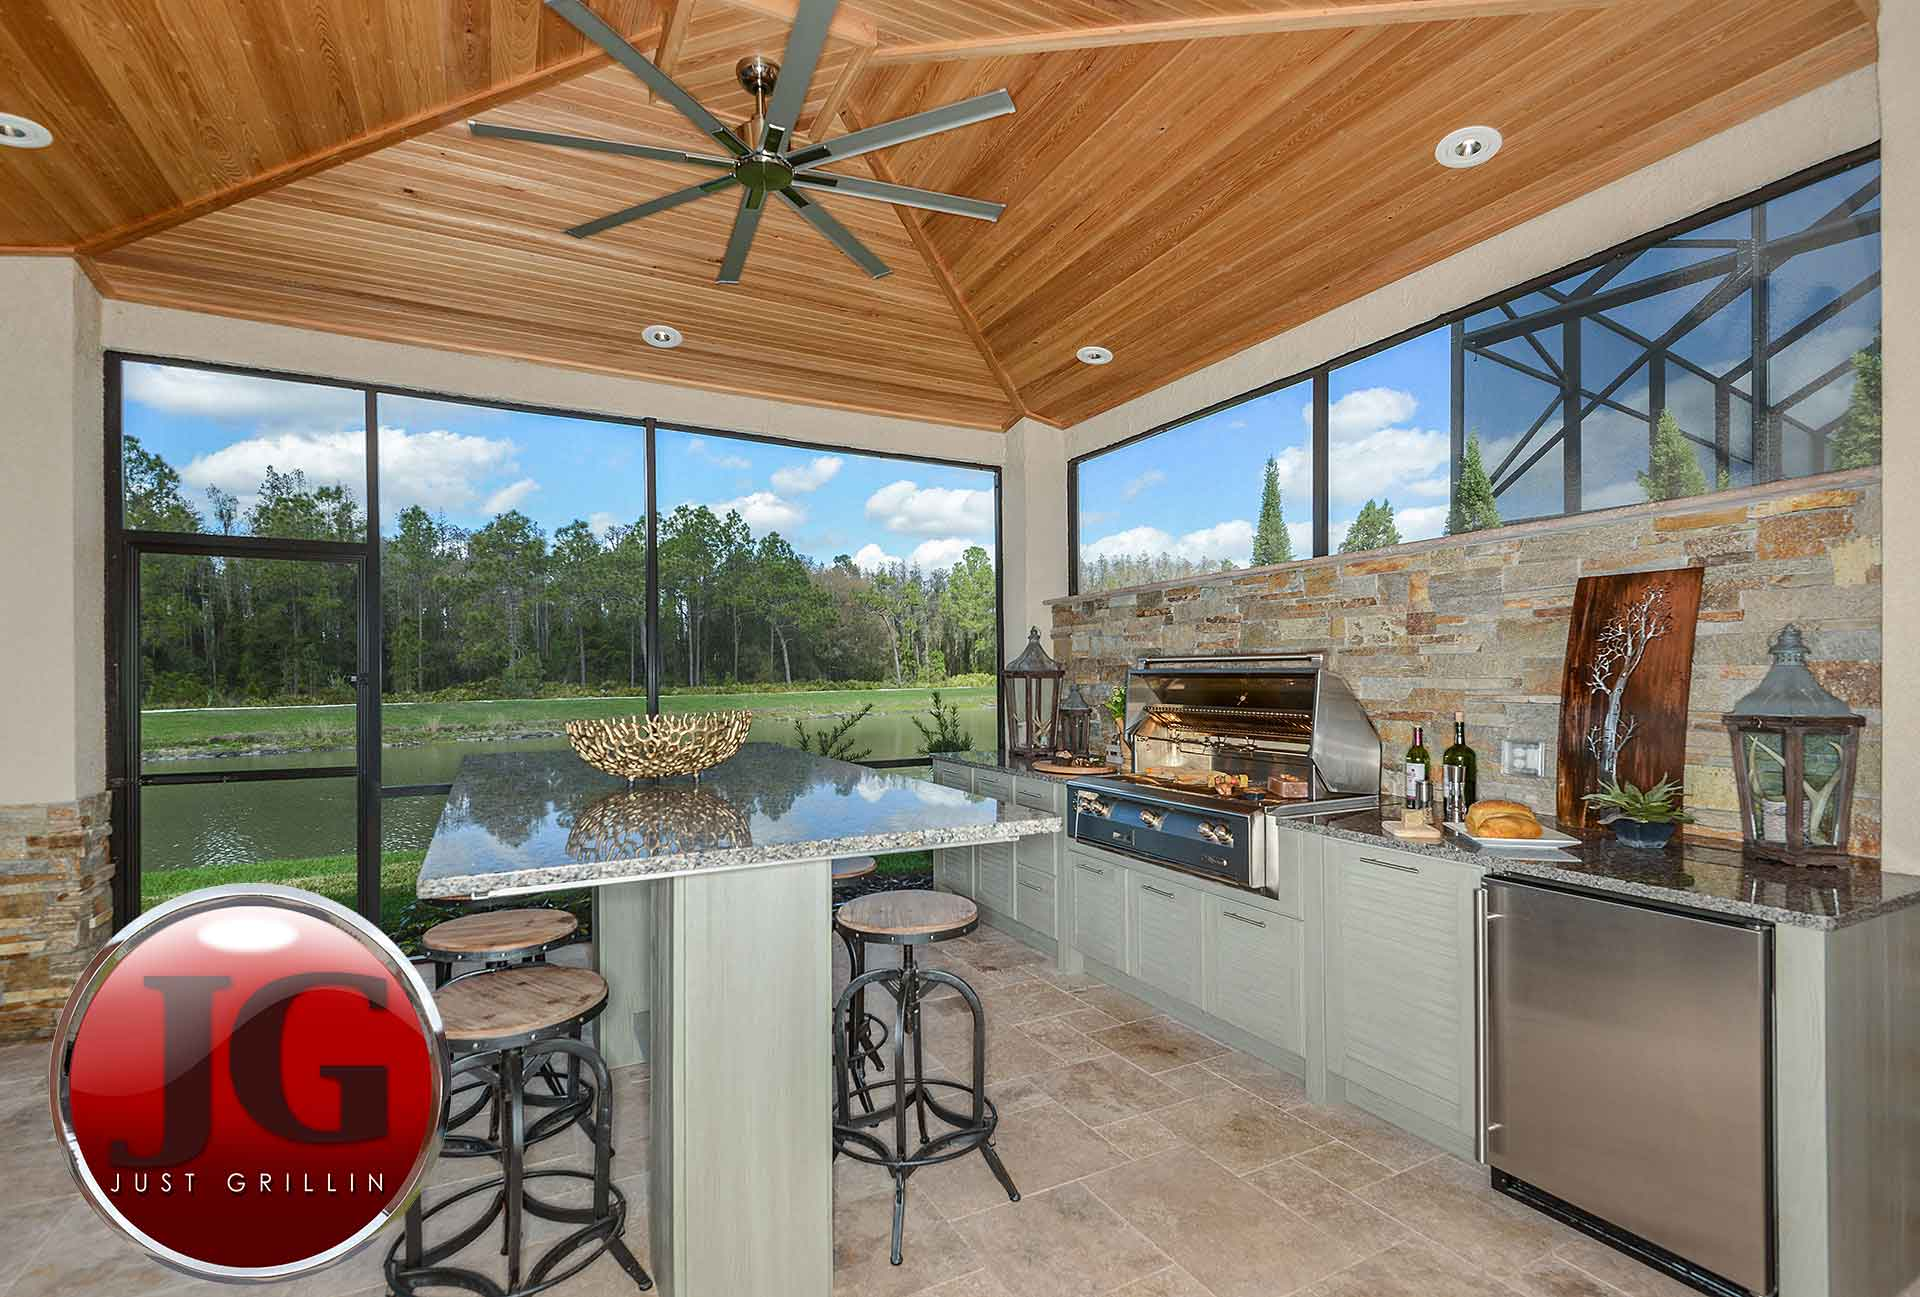 Outdoor Kitchen Design & Installation - Just Grillin Tampa, FL